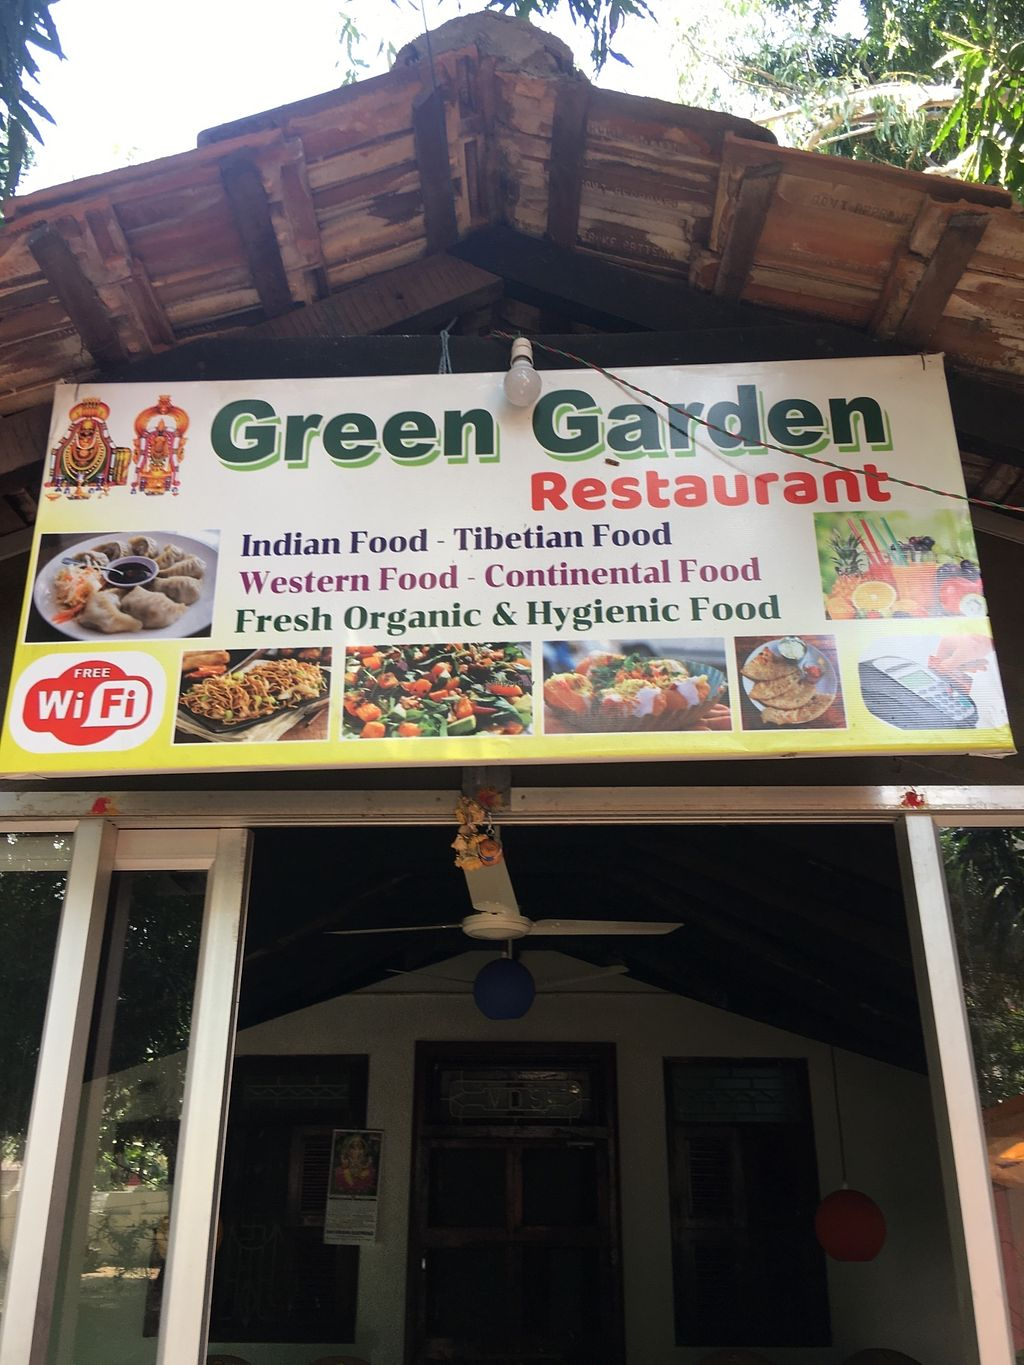 """Photo of Green Garden  by <a href=""""/members/profile/DevotedToMahadev"""">DevotedToMahadev</a> <br/>Main entrance <br/> February 18, 2018  - <a href='/contact/abuse/image/112406/360682'>Report</a>"""